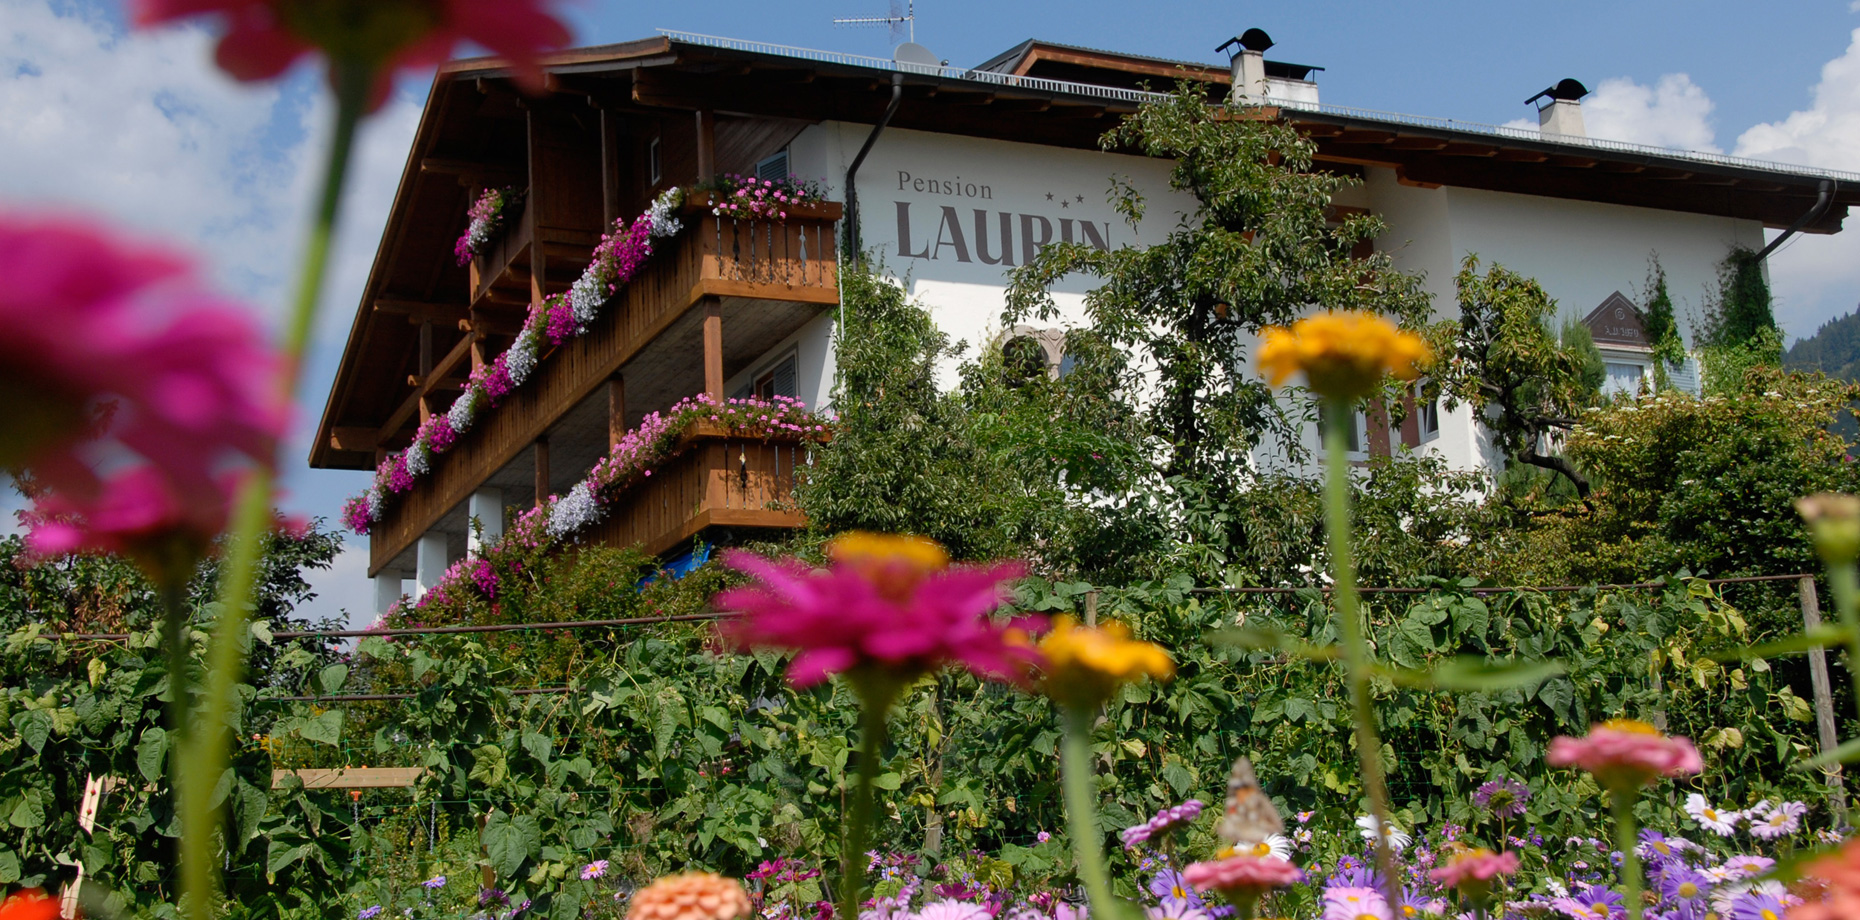 Pension Laurin in Schenna